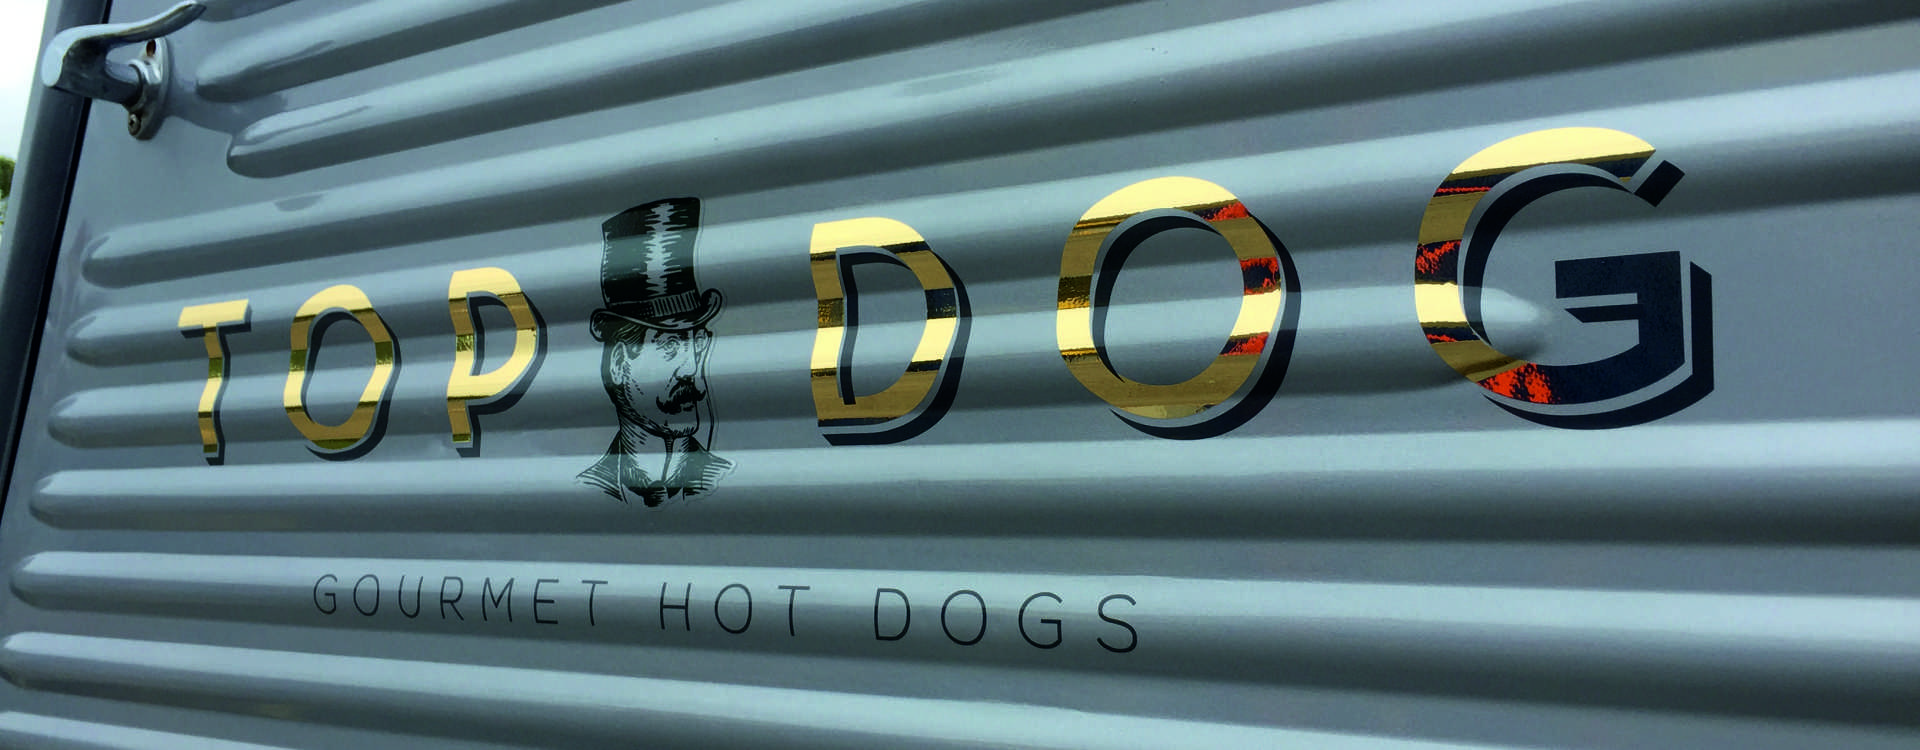 Top Dog Hot Dogs Vehicle Signage